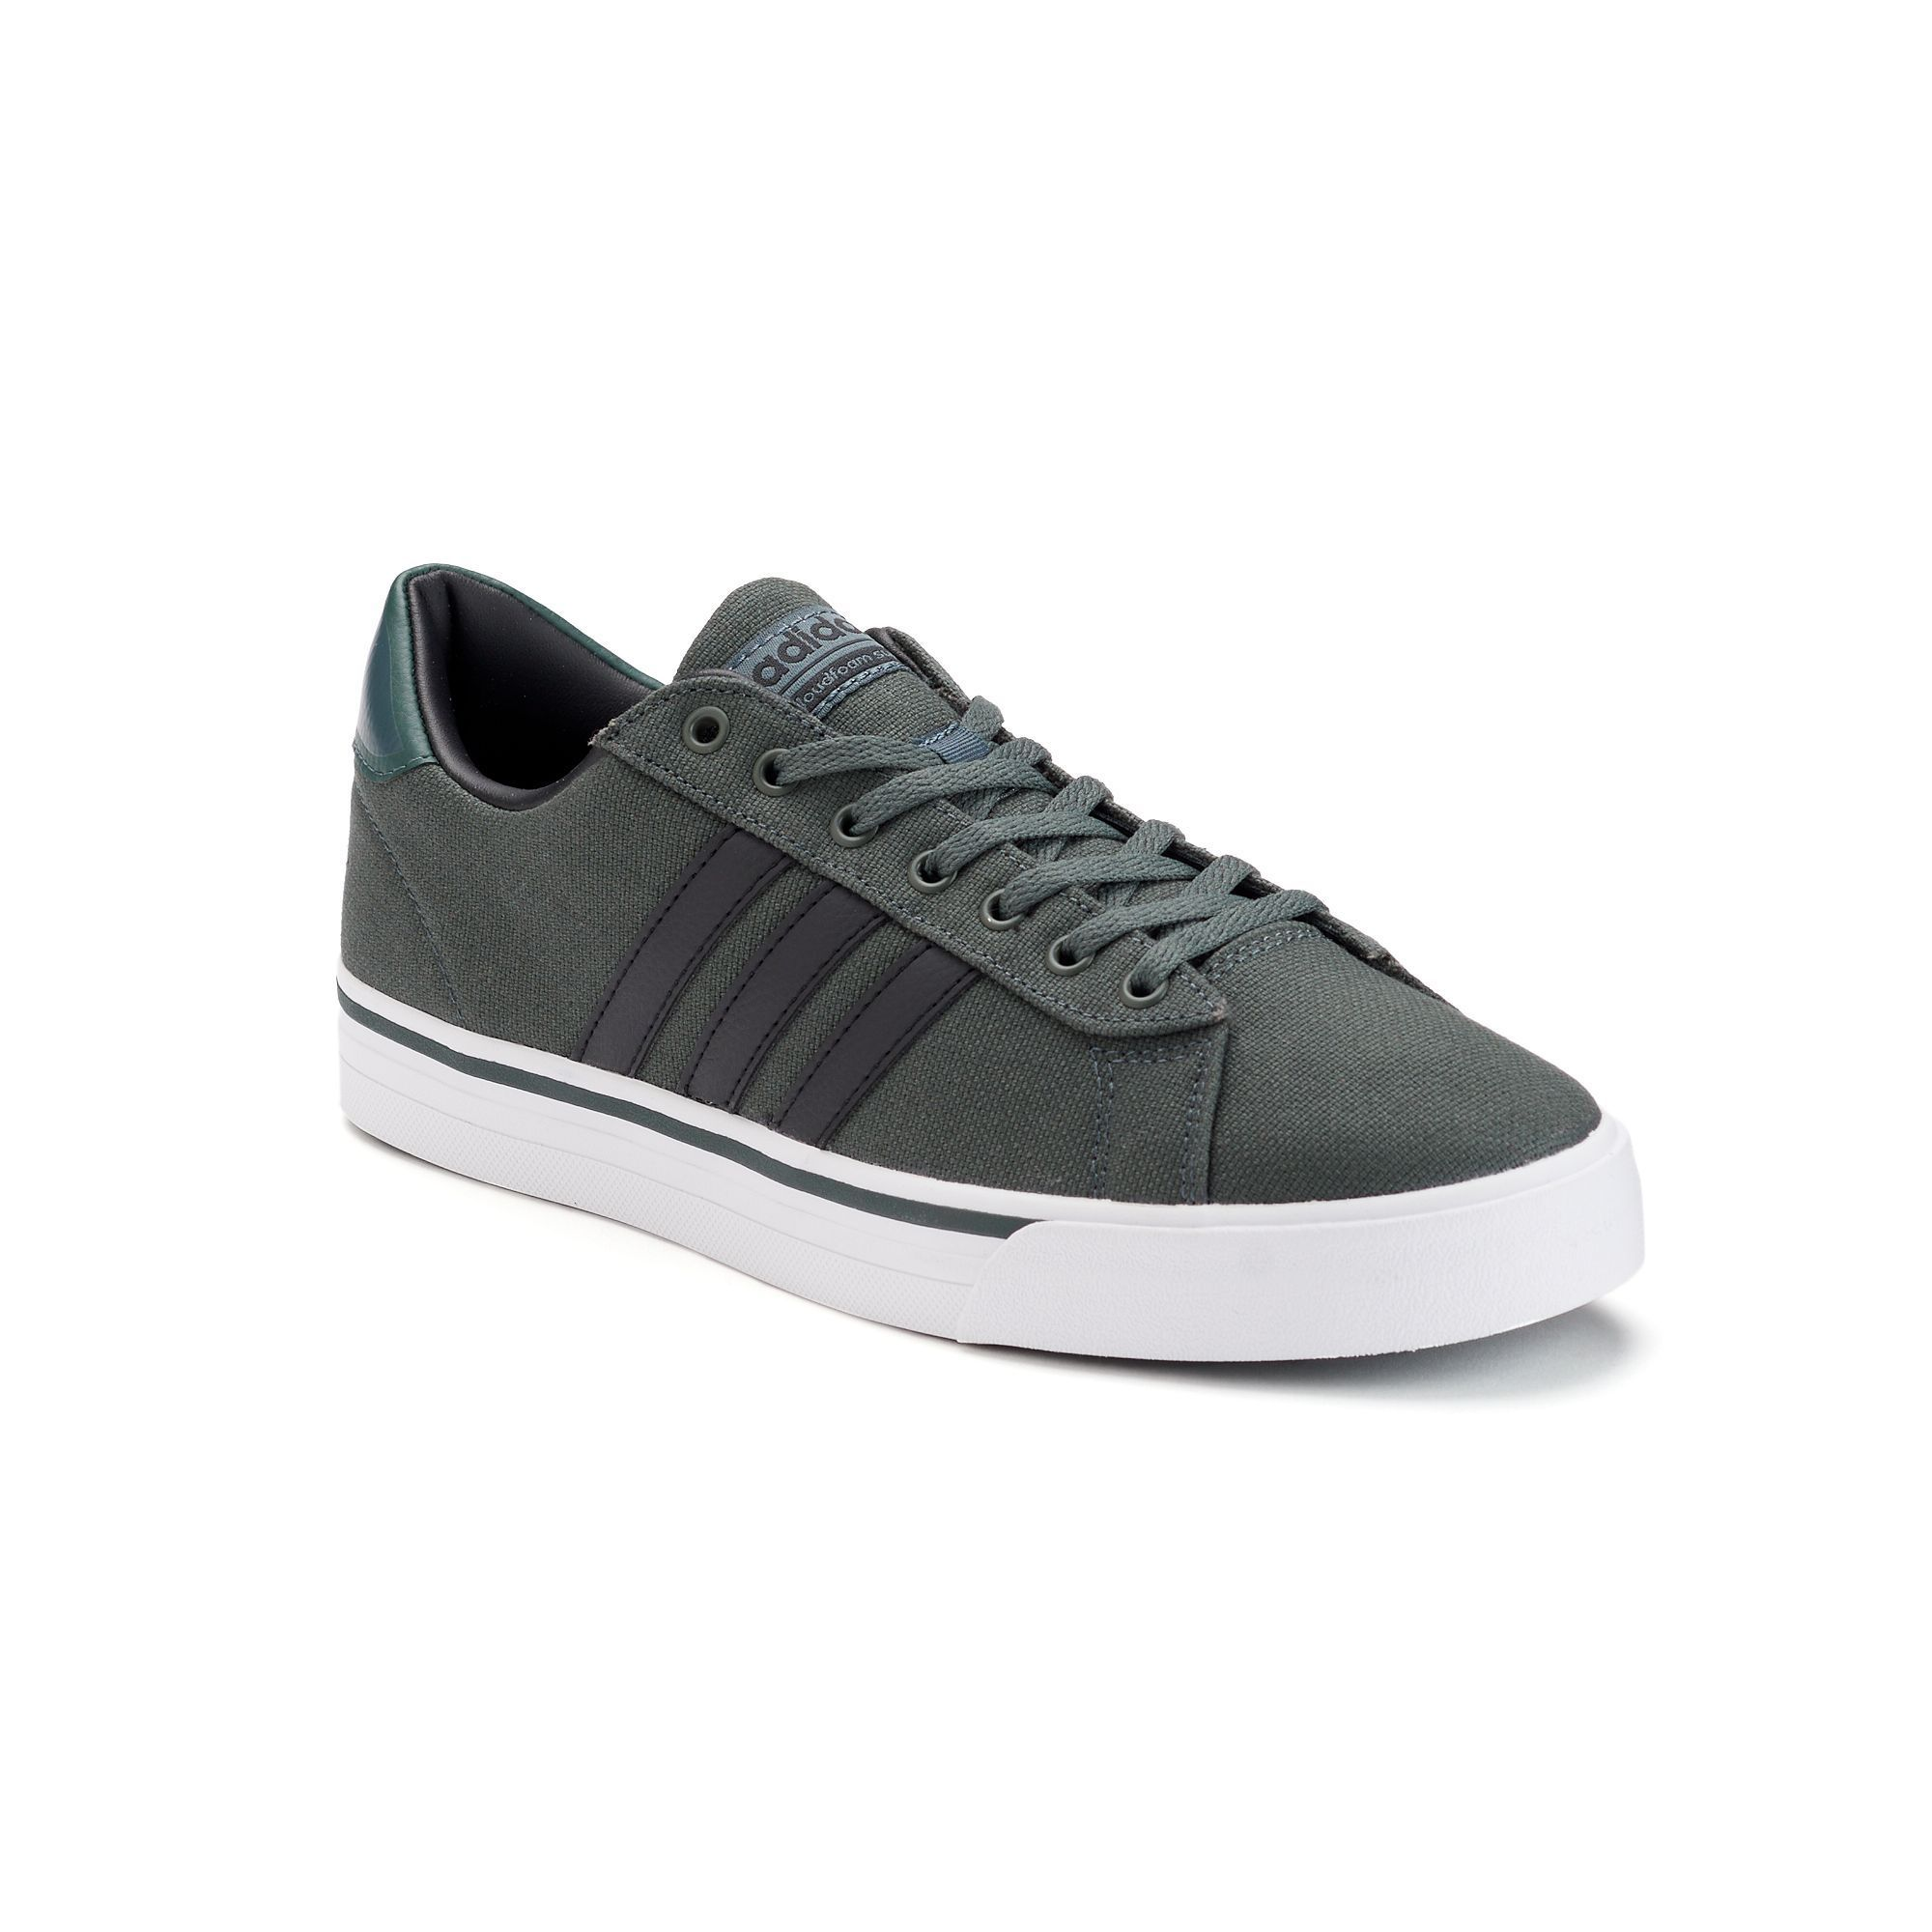 6a298ae097cd2 adidas NEO Cloudfoam Super Daily Men s Shoes